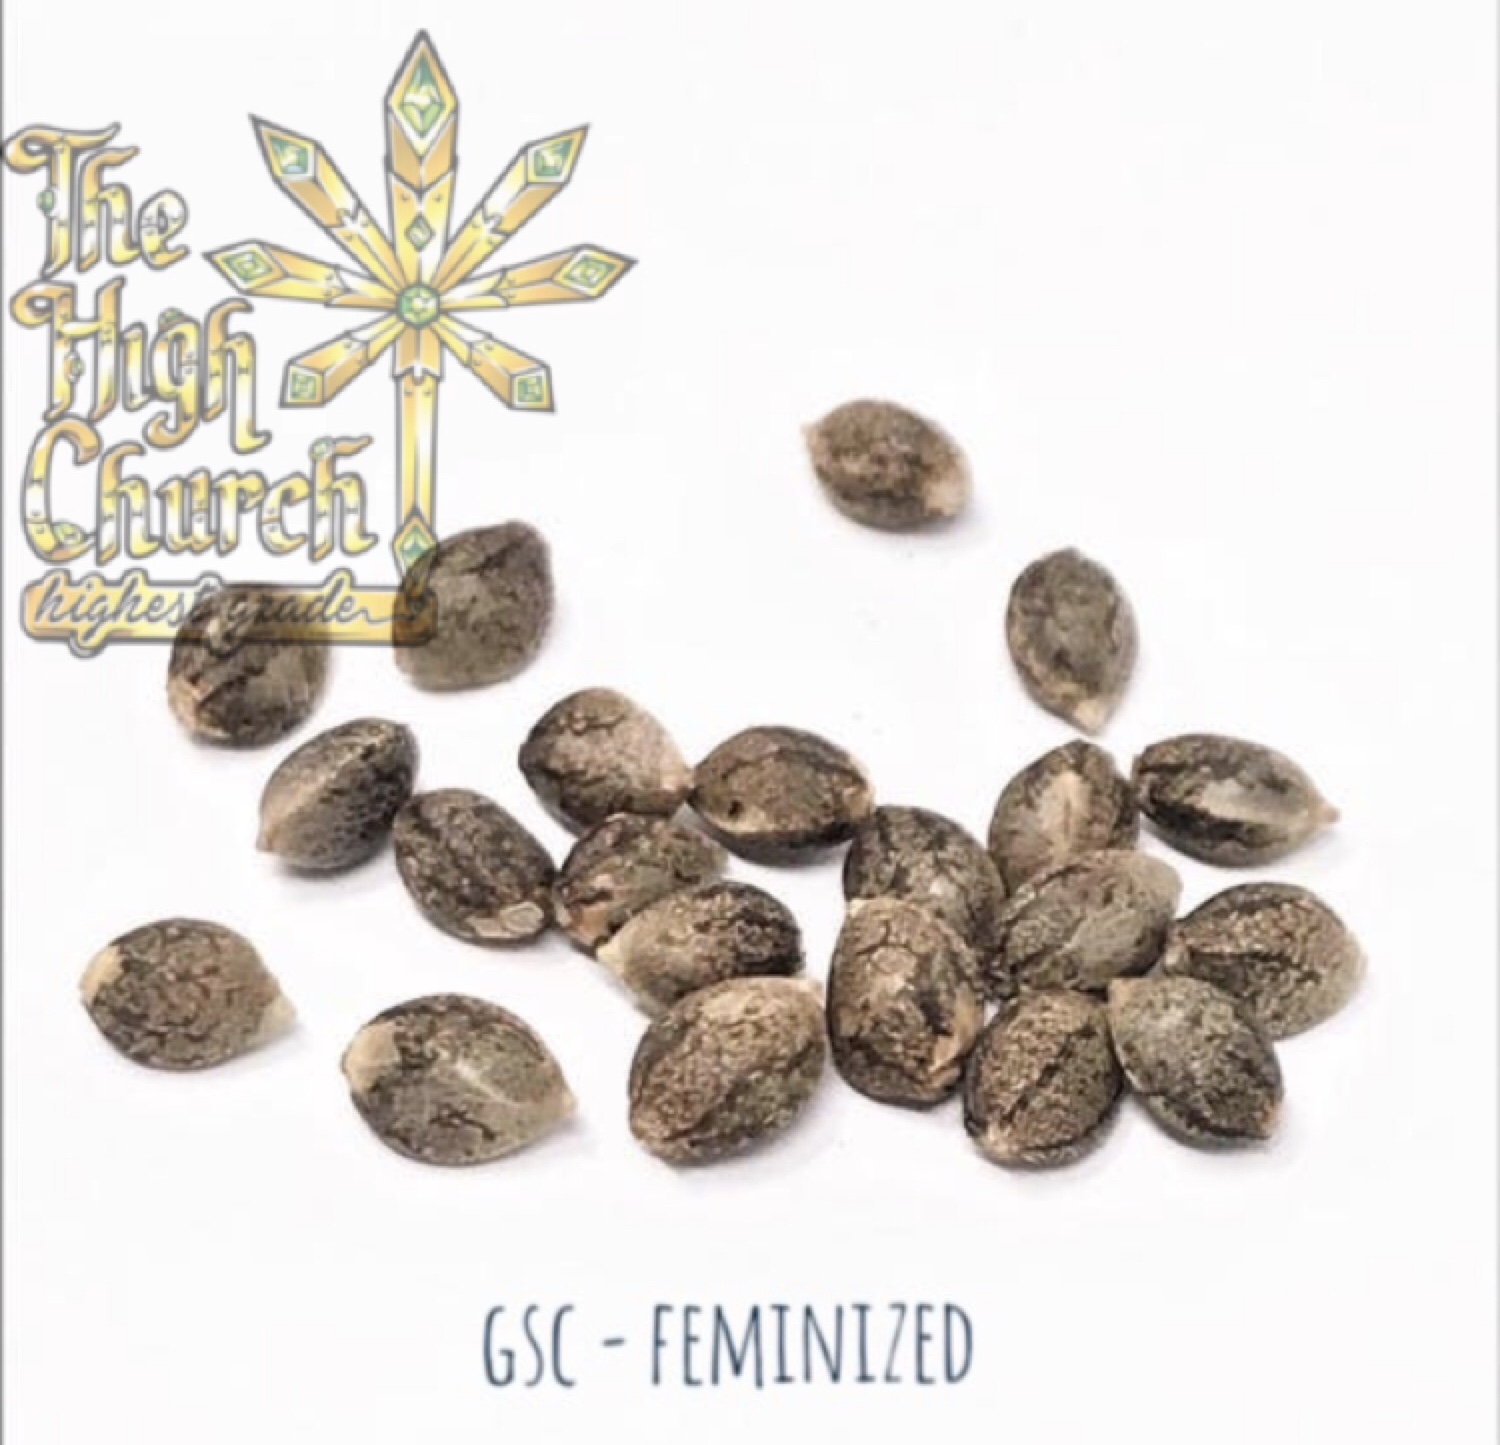 Girl Scout Cookies - Feminized Seeds